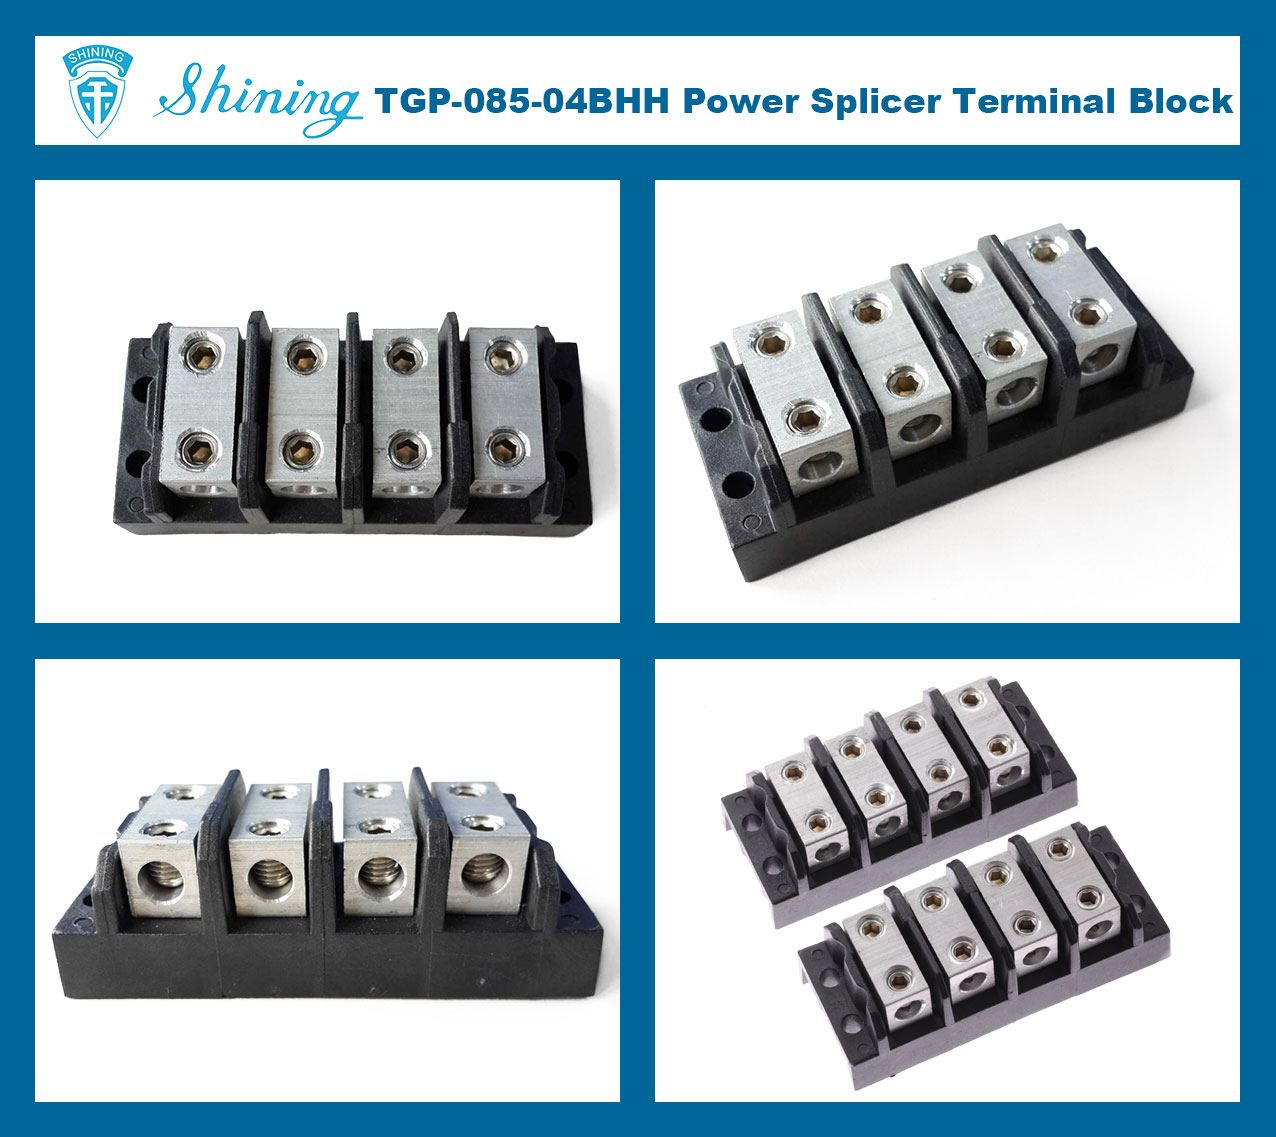 TGP-085-04BSS 600V 85A 4 Way Power Splicer Terminal Block